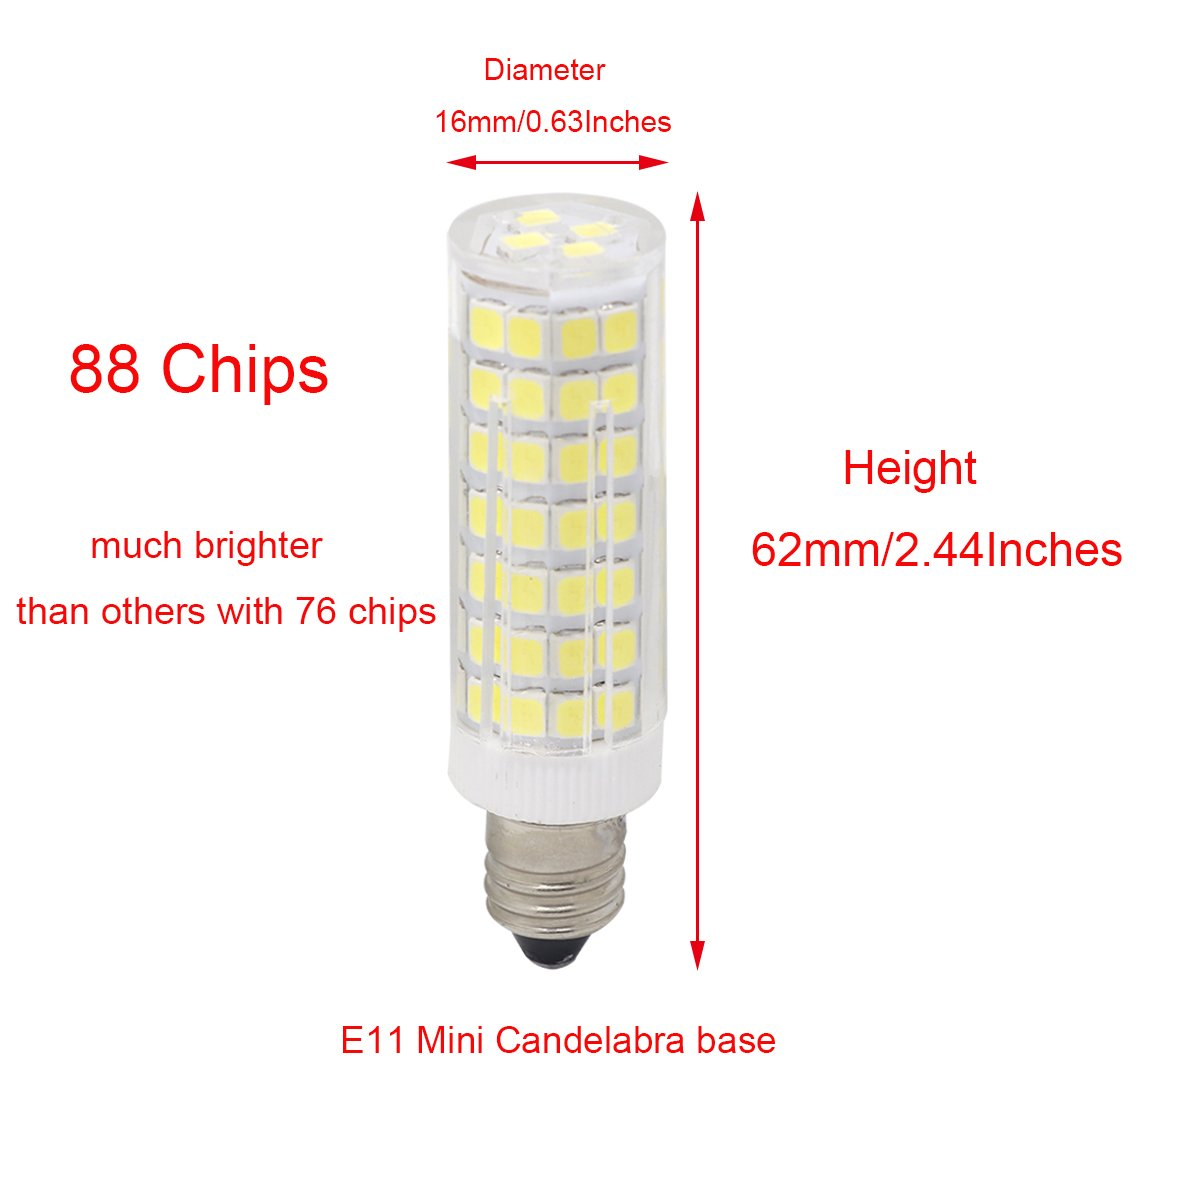 Perfect Complement for Chandeliers and Decorative Lamps 3 Pack Crystalumia DQ51E12ND27K120V E12 Warm White 2700K 4.3w ~30 Watt Equivalent Candle Bulb Crystal LED Light Bulbs Small Candelabra Base Long Lifetime Last 13 Yrs